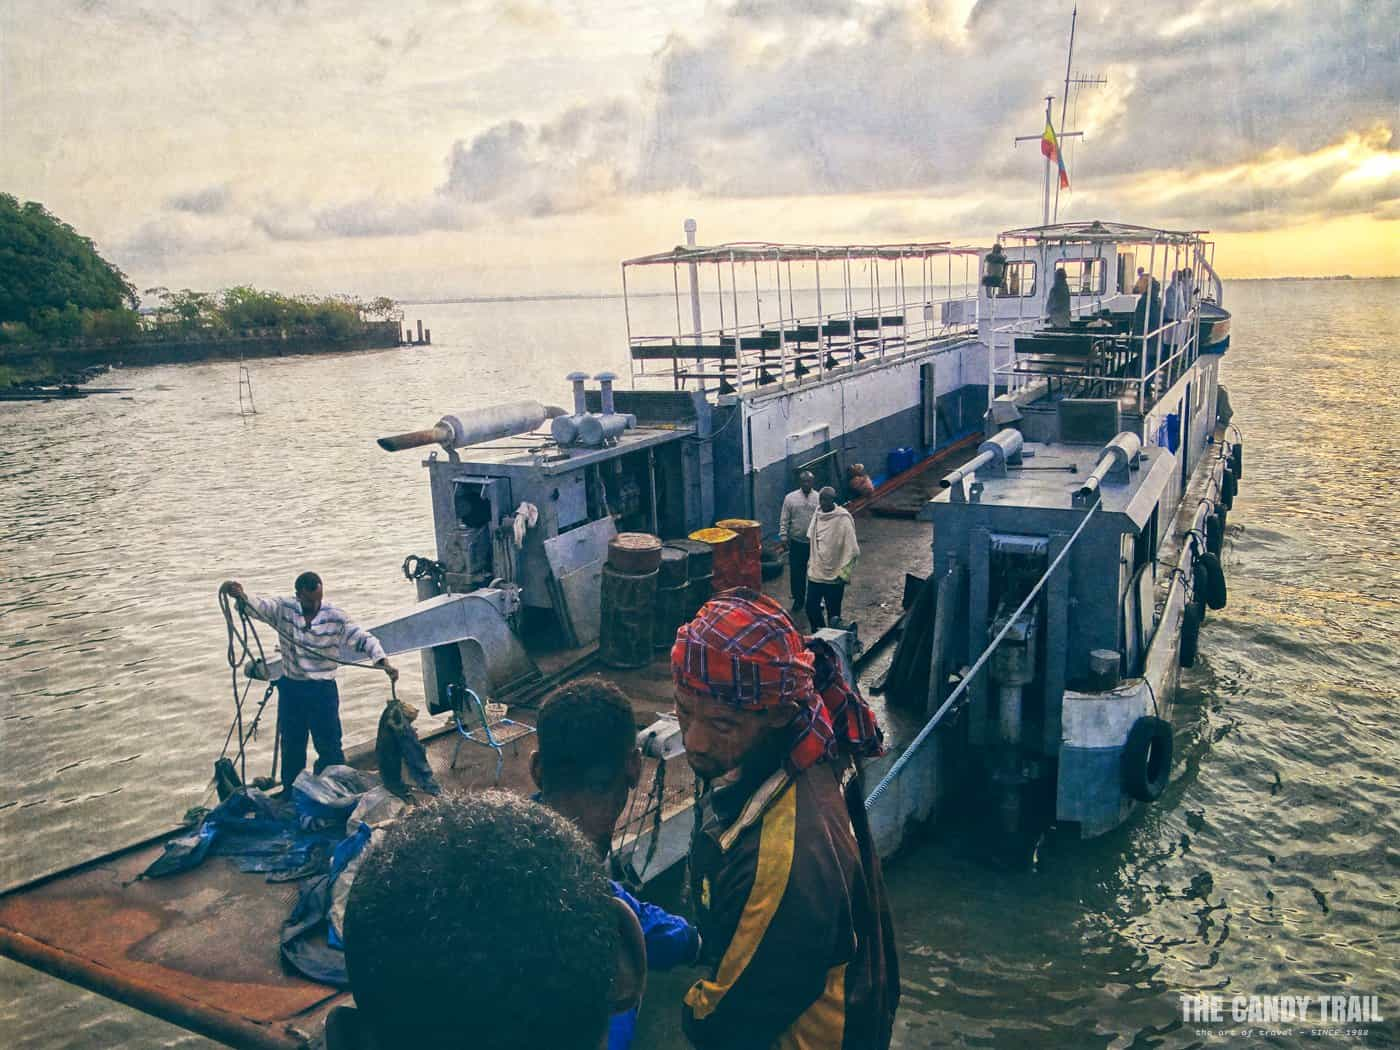 dawn ferry from gorgora for the boat trip across lake-tana in ethiopia